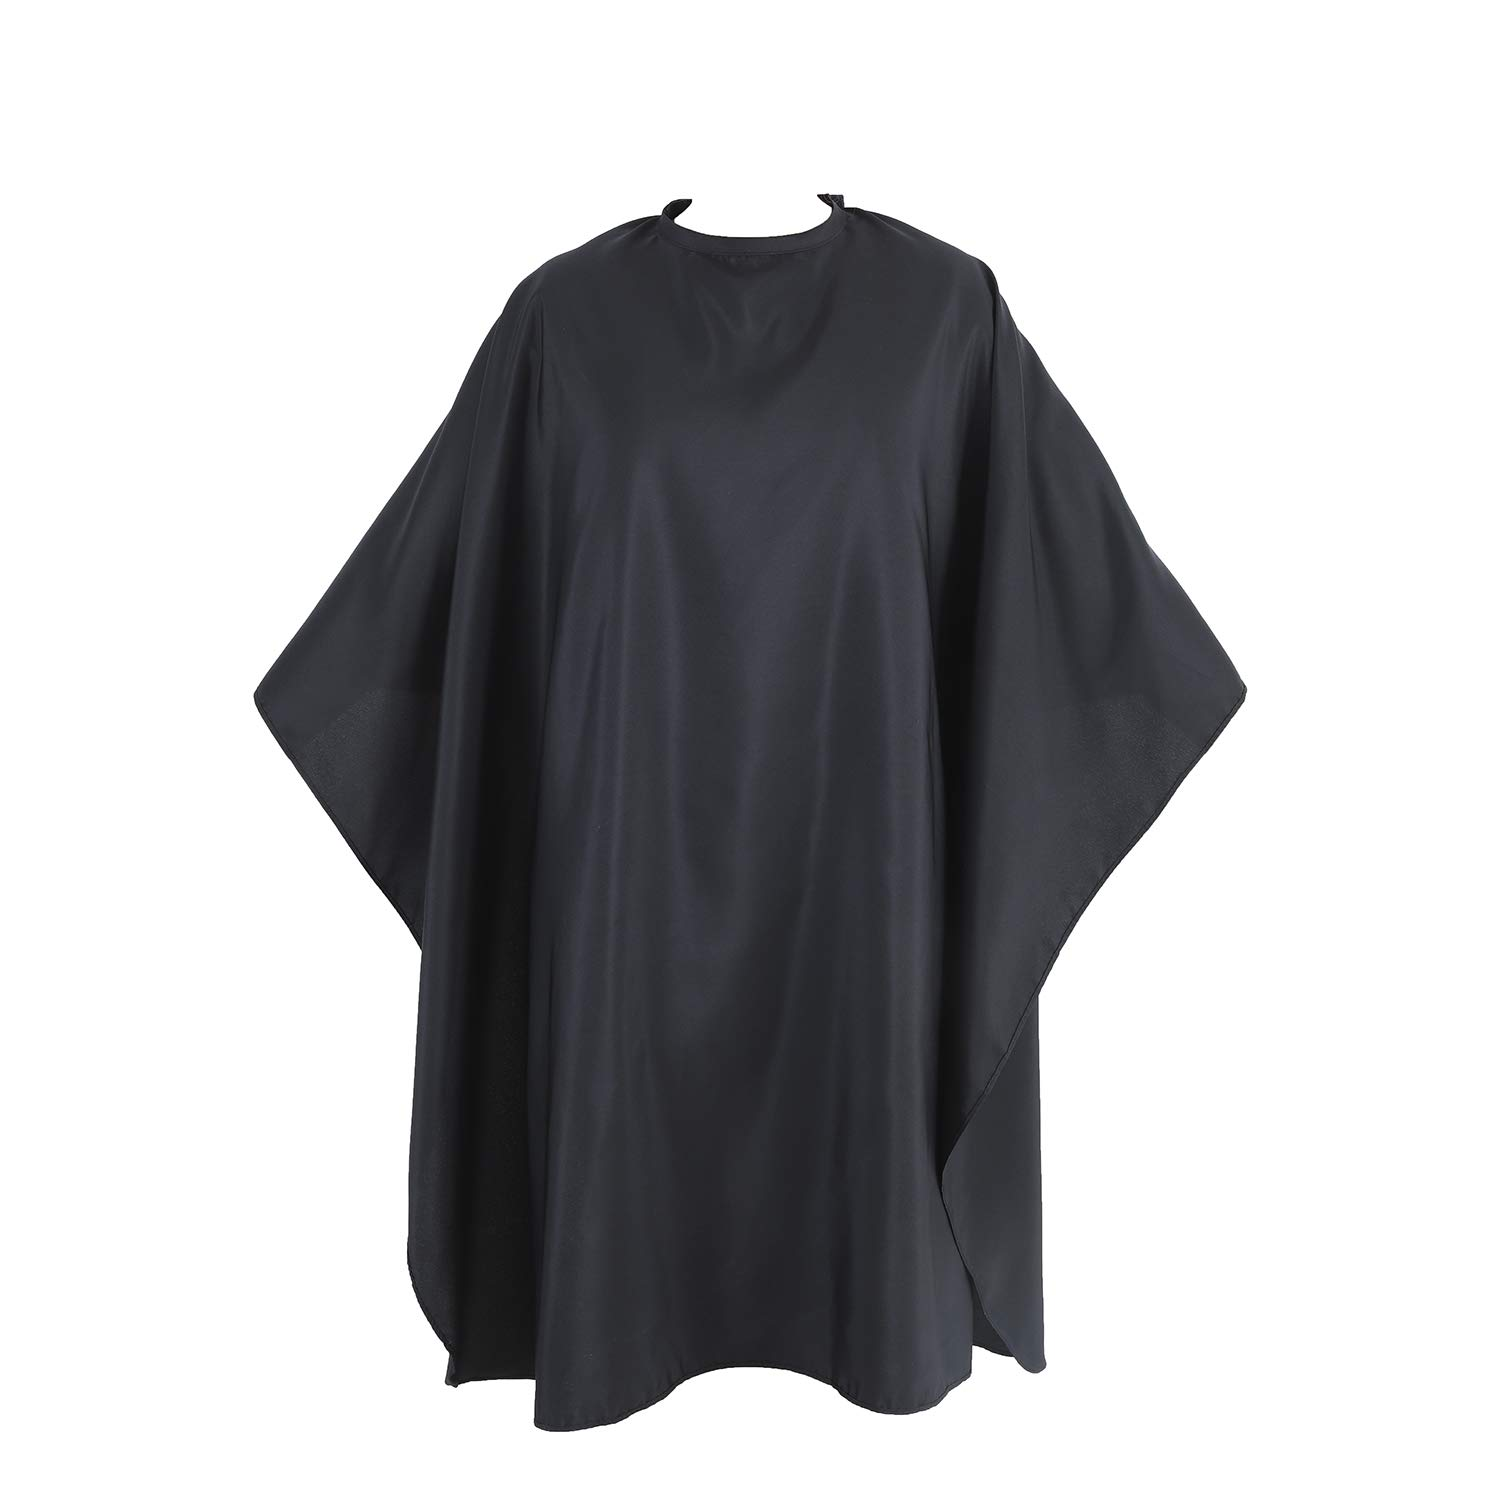 YELEGAI Professional Barber Cape,Lightweight Breathable Polyester Hair Cutting Cape,Haircut Cape with Adjustable Neckline, Salon cape for Cutting,hairdressing,Makeup and More,56x63 inches(Black): Beauty